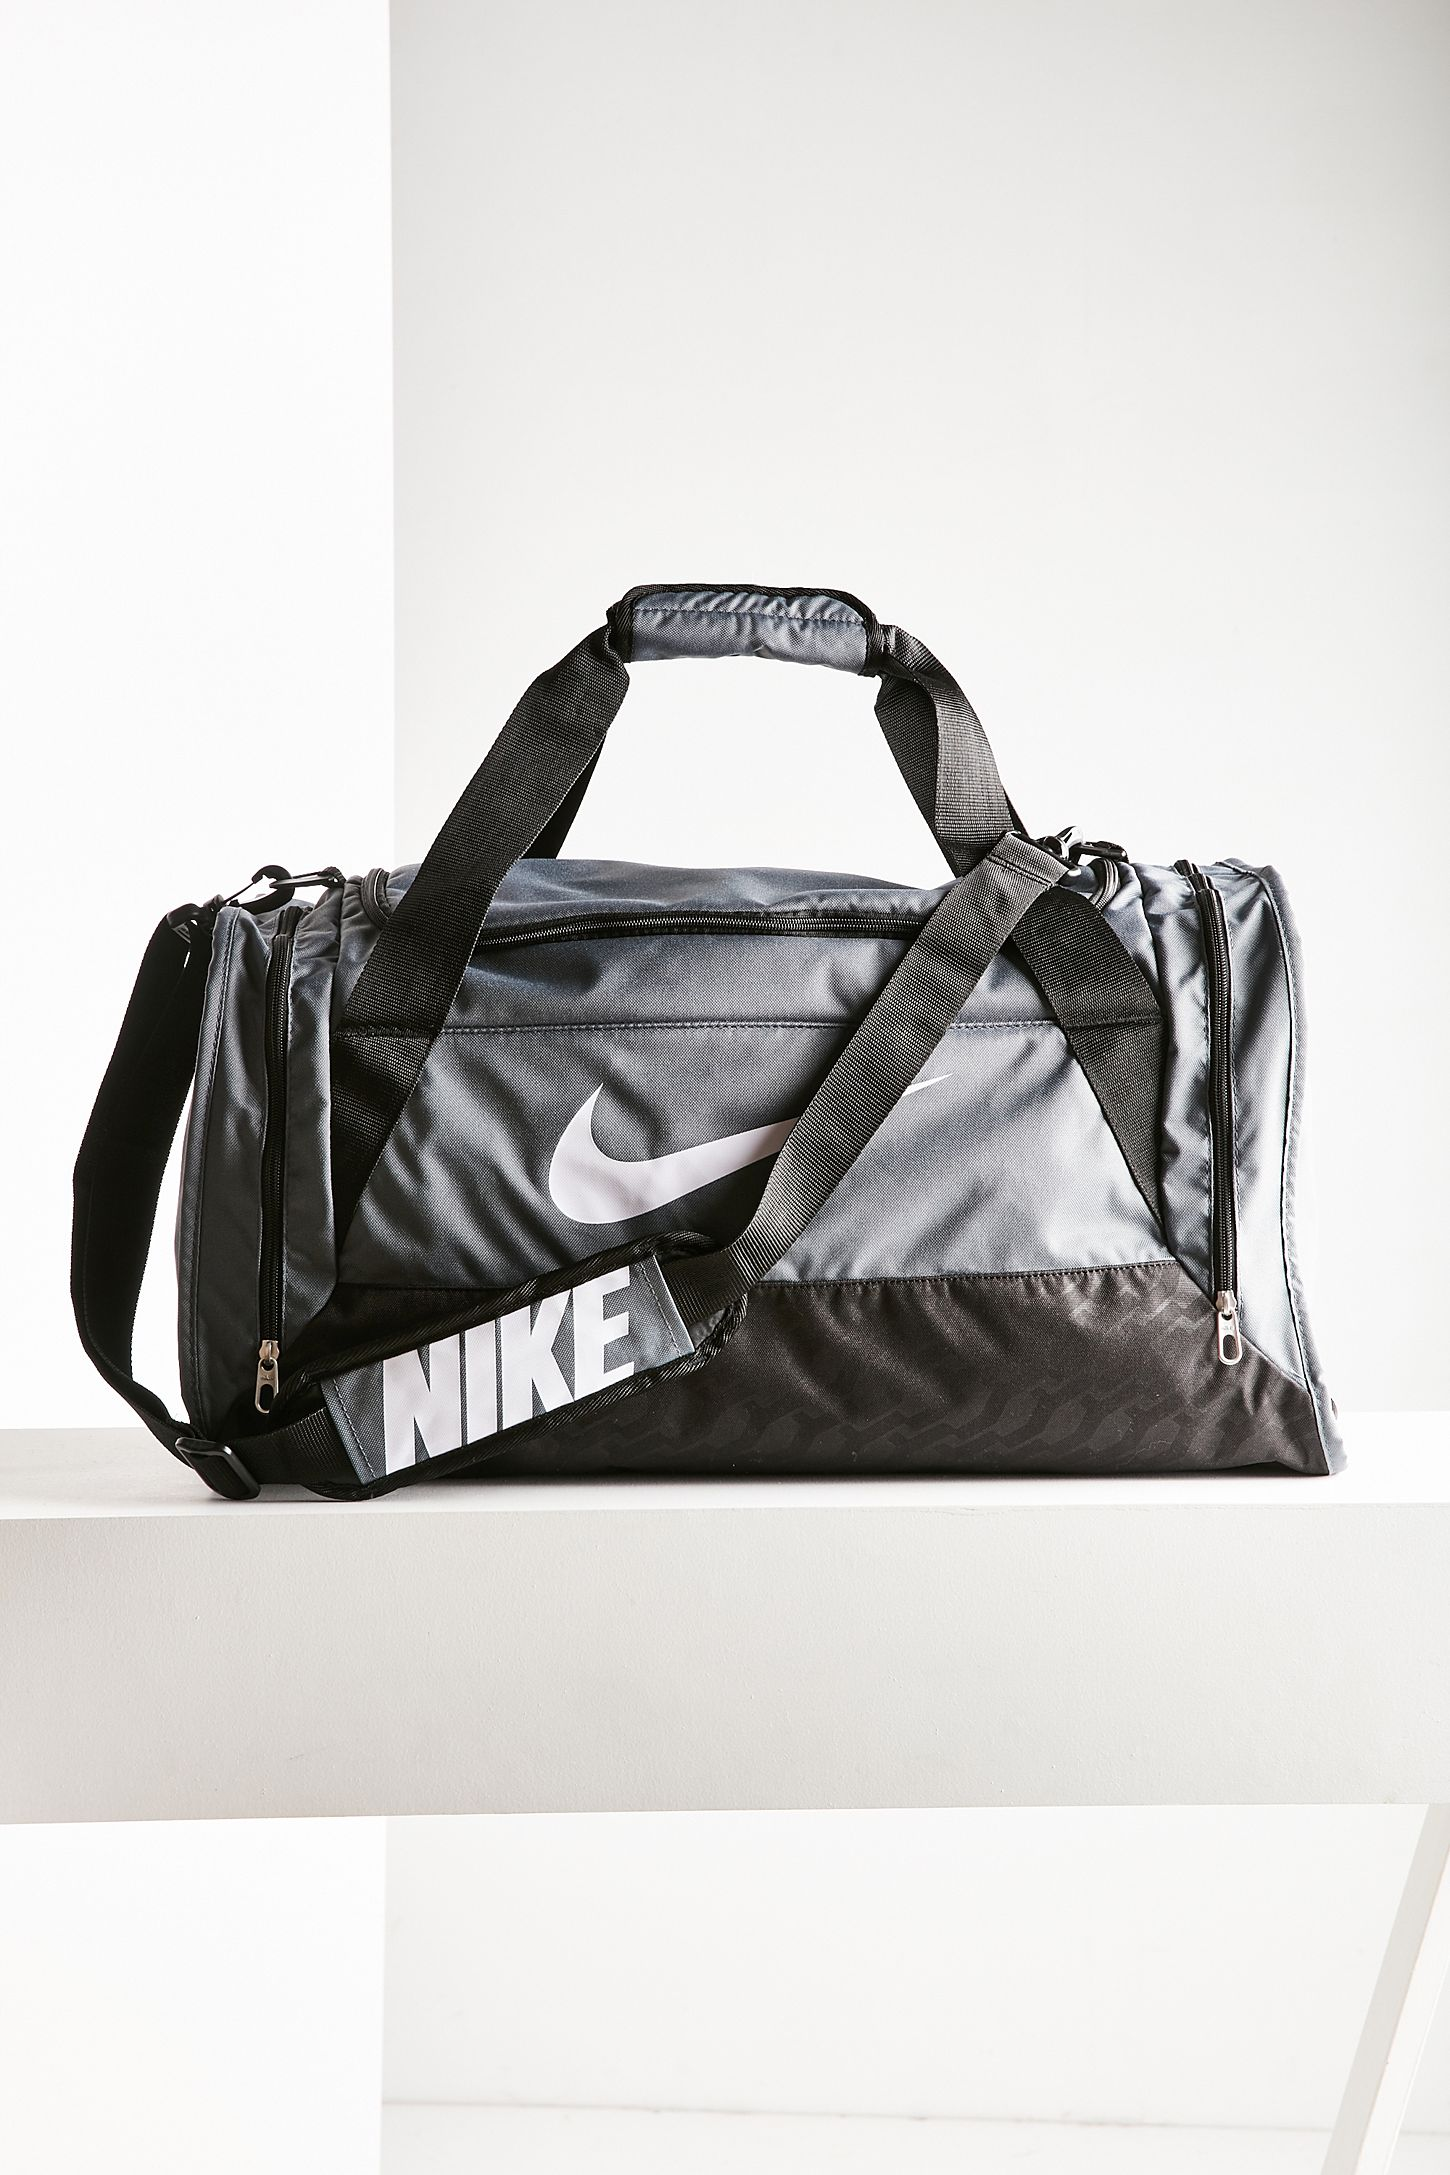 4b8c4d409ca0 Nike Brasilia 6 Medium Duffle Bag